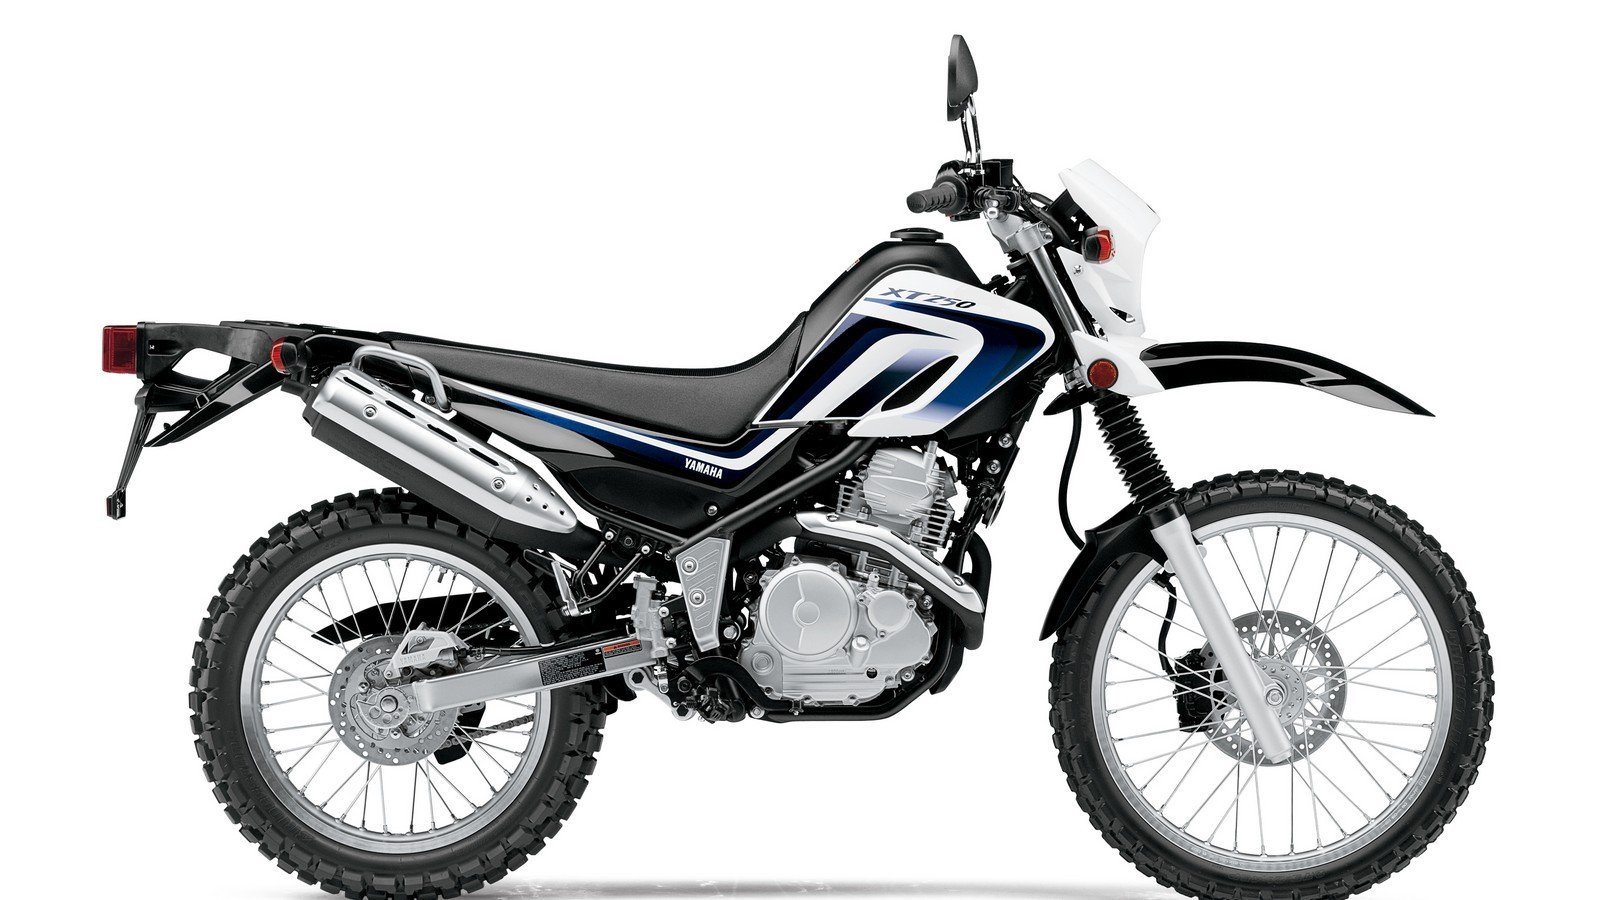 2013 yamaha xt250 picture 464415 motorcycle review